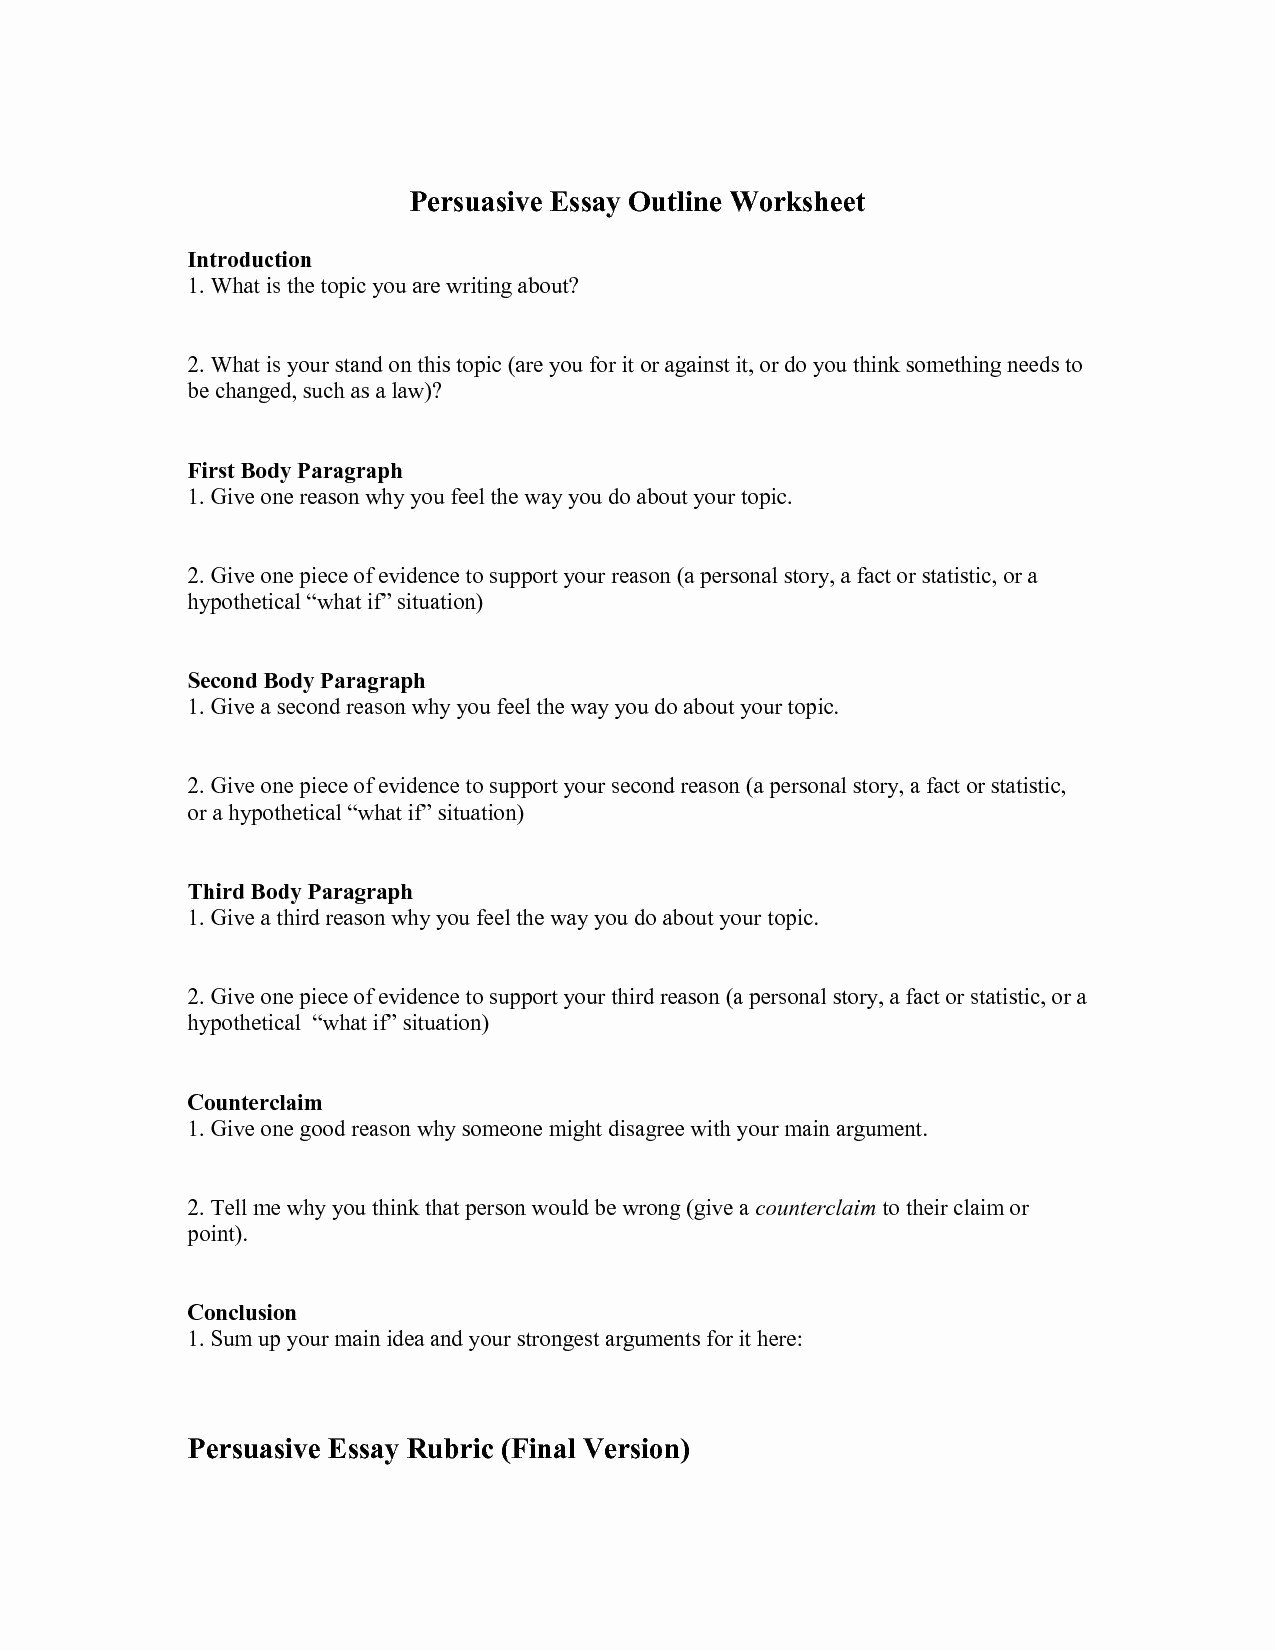 Logical Fallacies Worksheet High School Lovely Logical Fallacies Worksheet High School Logical Fallacies